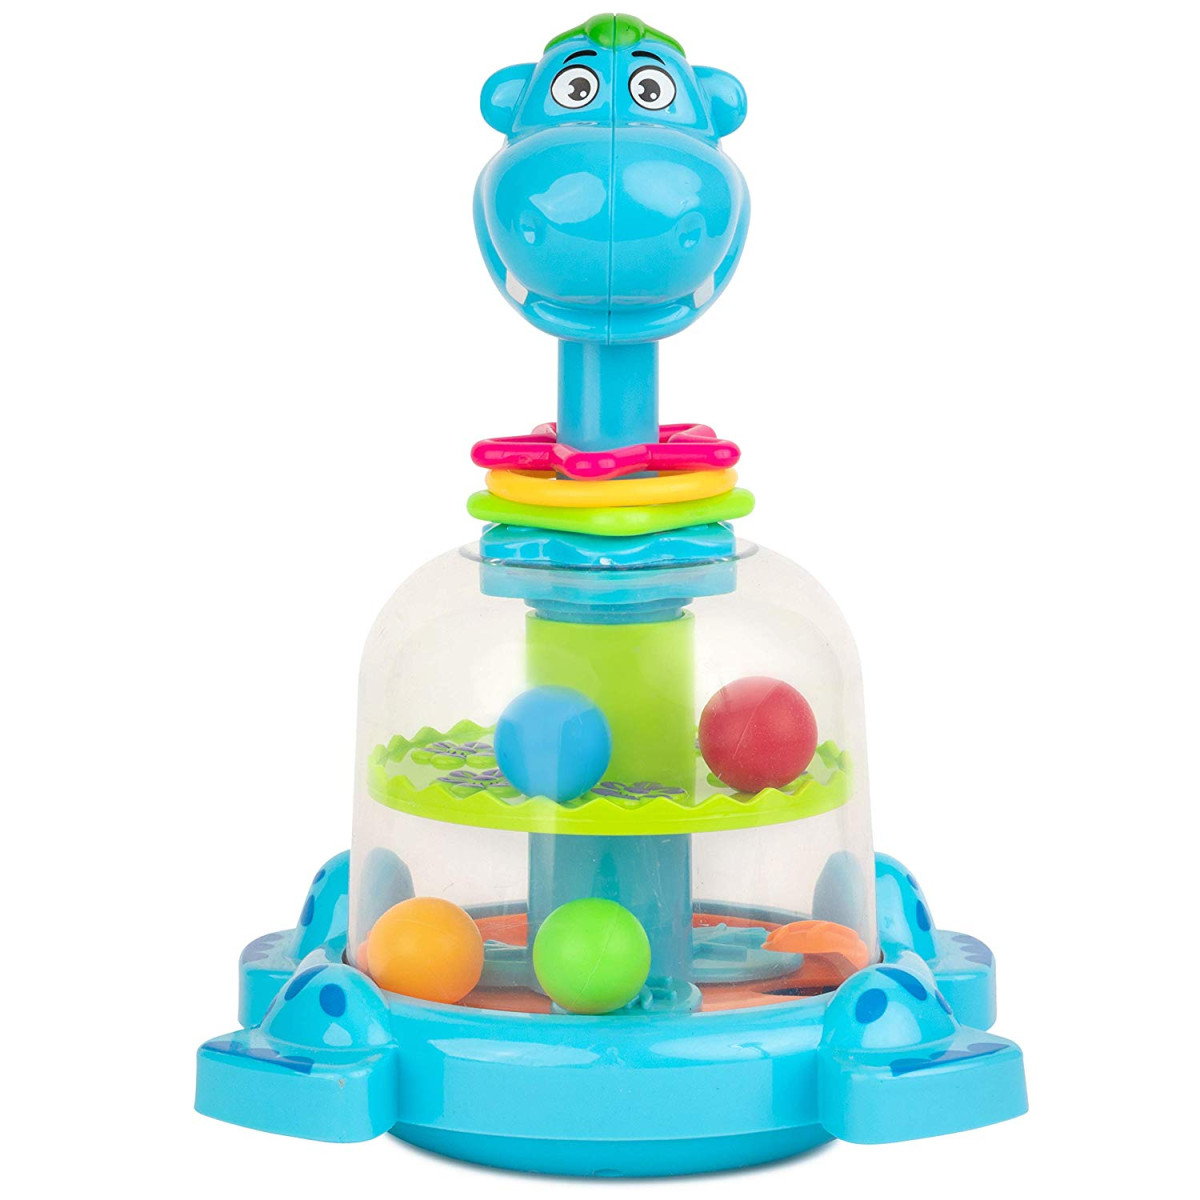 Toy To Enjoy Push and Spin Hippo Toy Easy Press Button Ideal for Fine Motor Skill Development and Learning Activity Great for Infants Toddlers 12